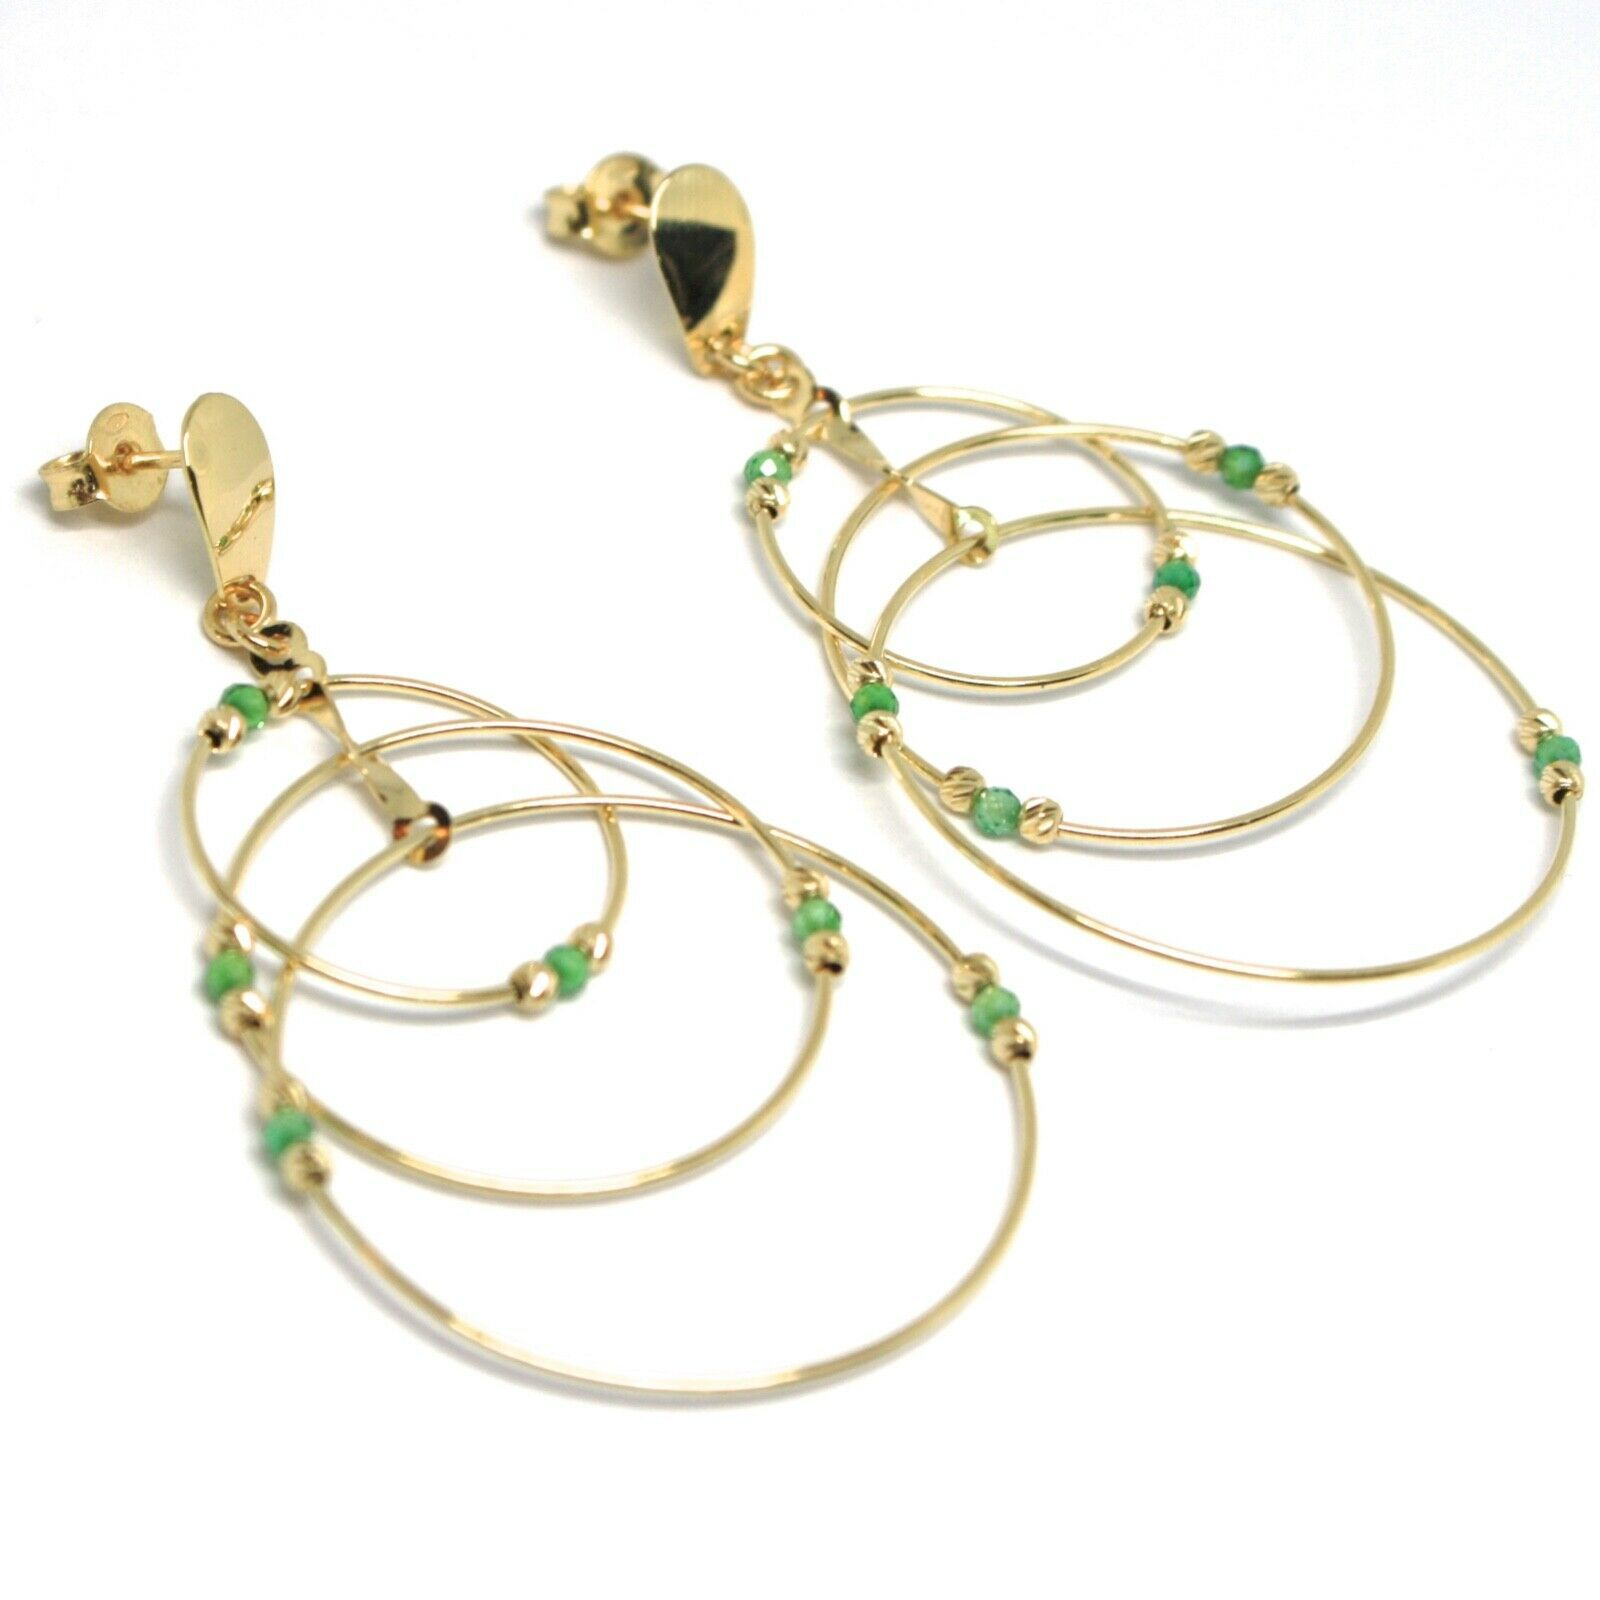 Drop Earrings Yellow Gold 750 18K, Triple Circle, Tourmaline Green, Balls